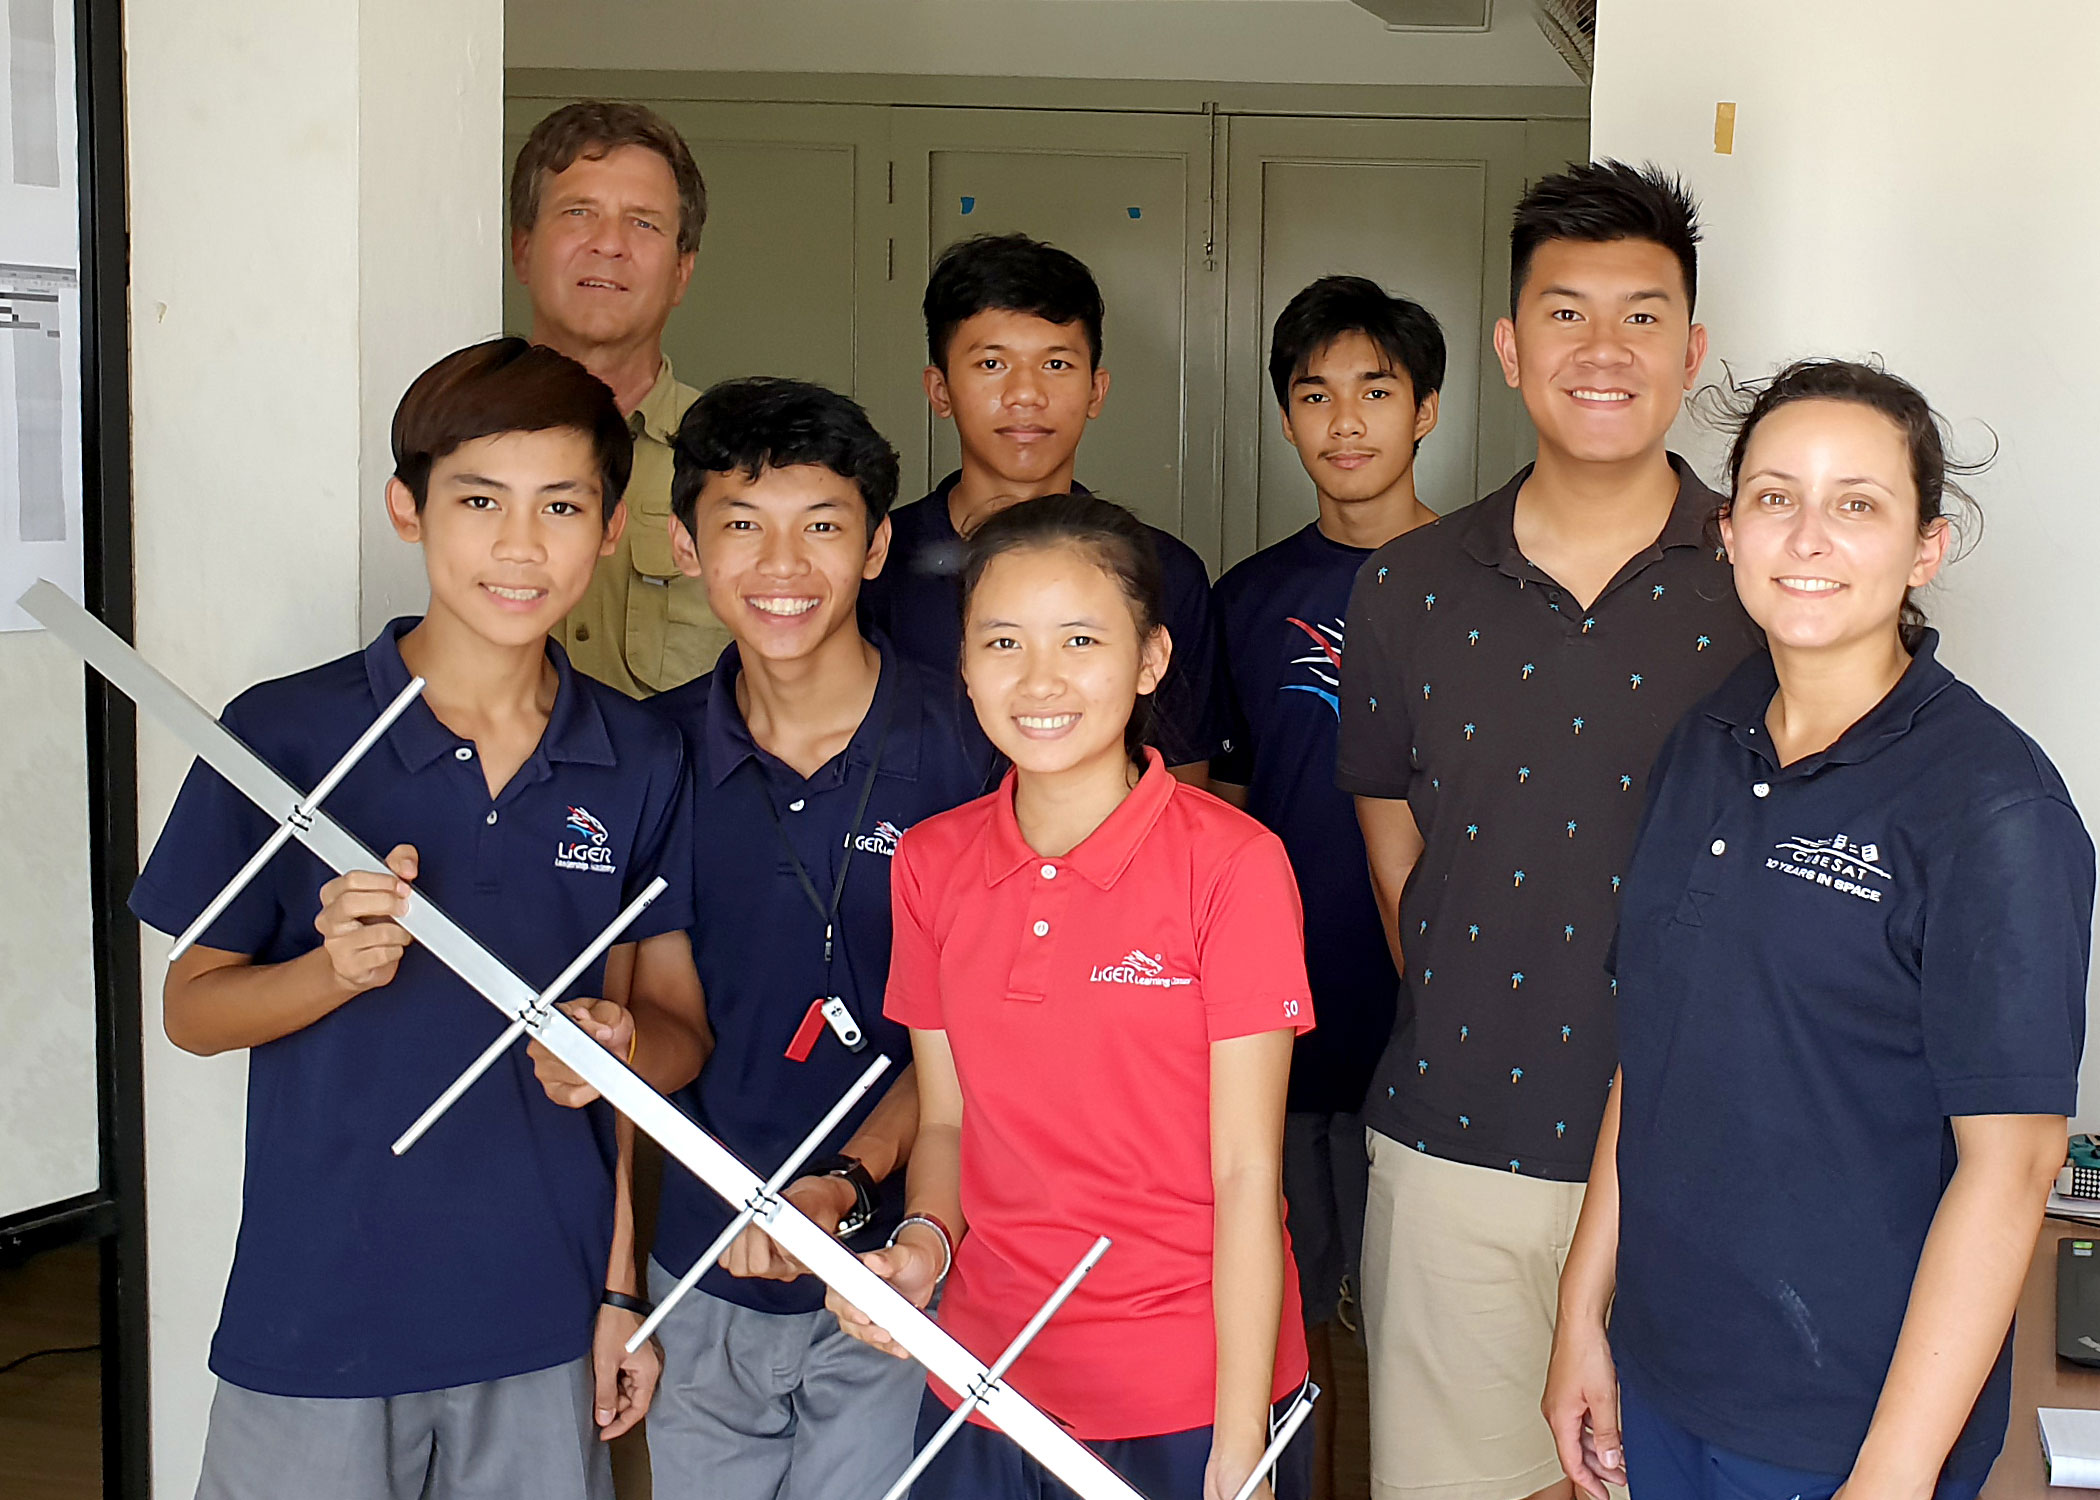 Pauline Faure, an assistant professor of aerospace engineering at Cal Poly, at right, and Justin Nguyen, a Cal Poly computer engineering senior from Fremont, California, second from right, with the group of science, technology, engineering and mathematics seniors from the Liger Leadership Academy who want to build a small satellite hold the handheld antenna for the LigerSat ground station. Also pictured, at rear left, is Doug Bender, a retired Boeing Co. engineer who knew about CubeSats through his former job and connected the Liger Academy with Cal Poly.